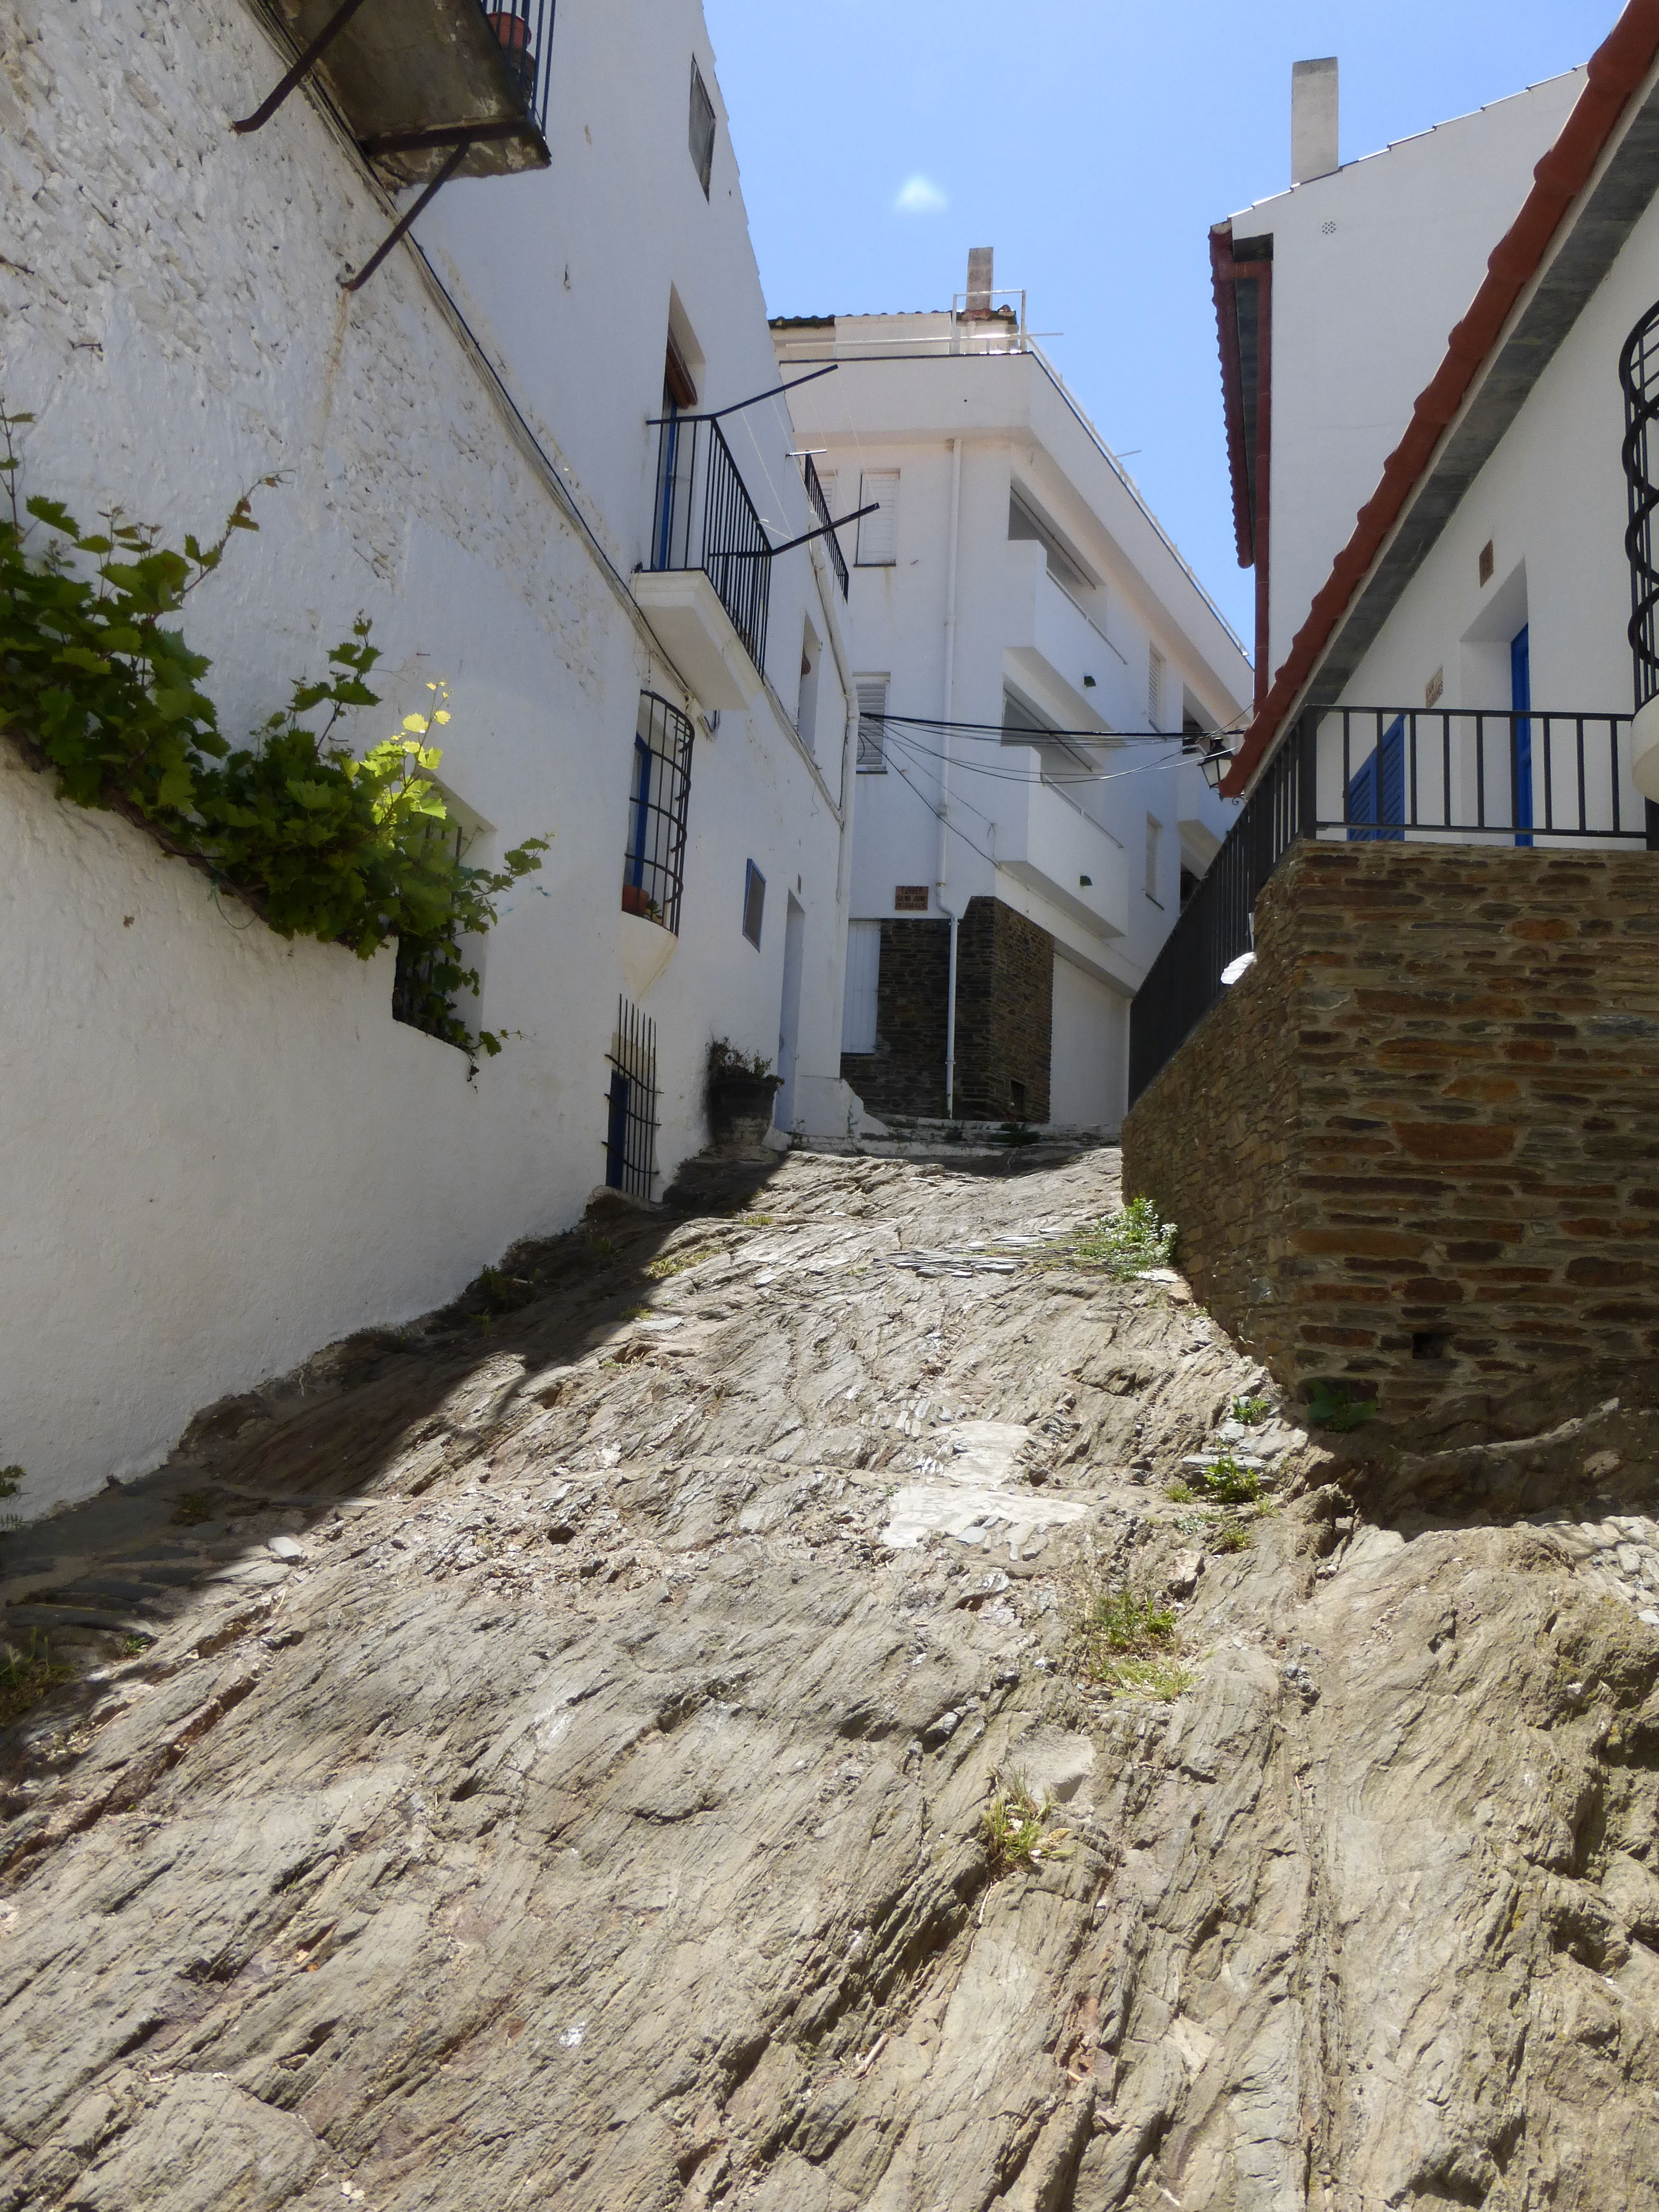 17th May 2014 day trip in #Cadaques with @Easeetrip. A #client send us some beautiful pictures of the #day #trip. Thank you very much for these magnificent #photos!!! www.easeetrip.com